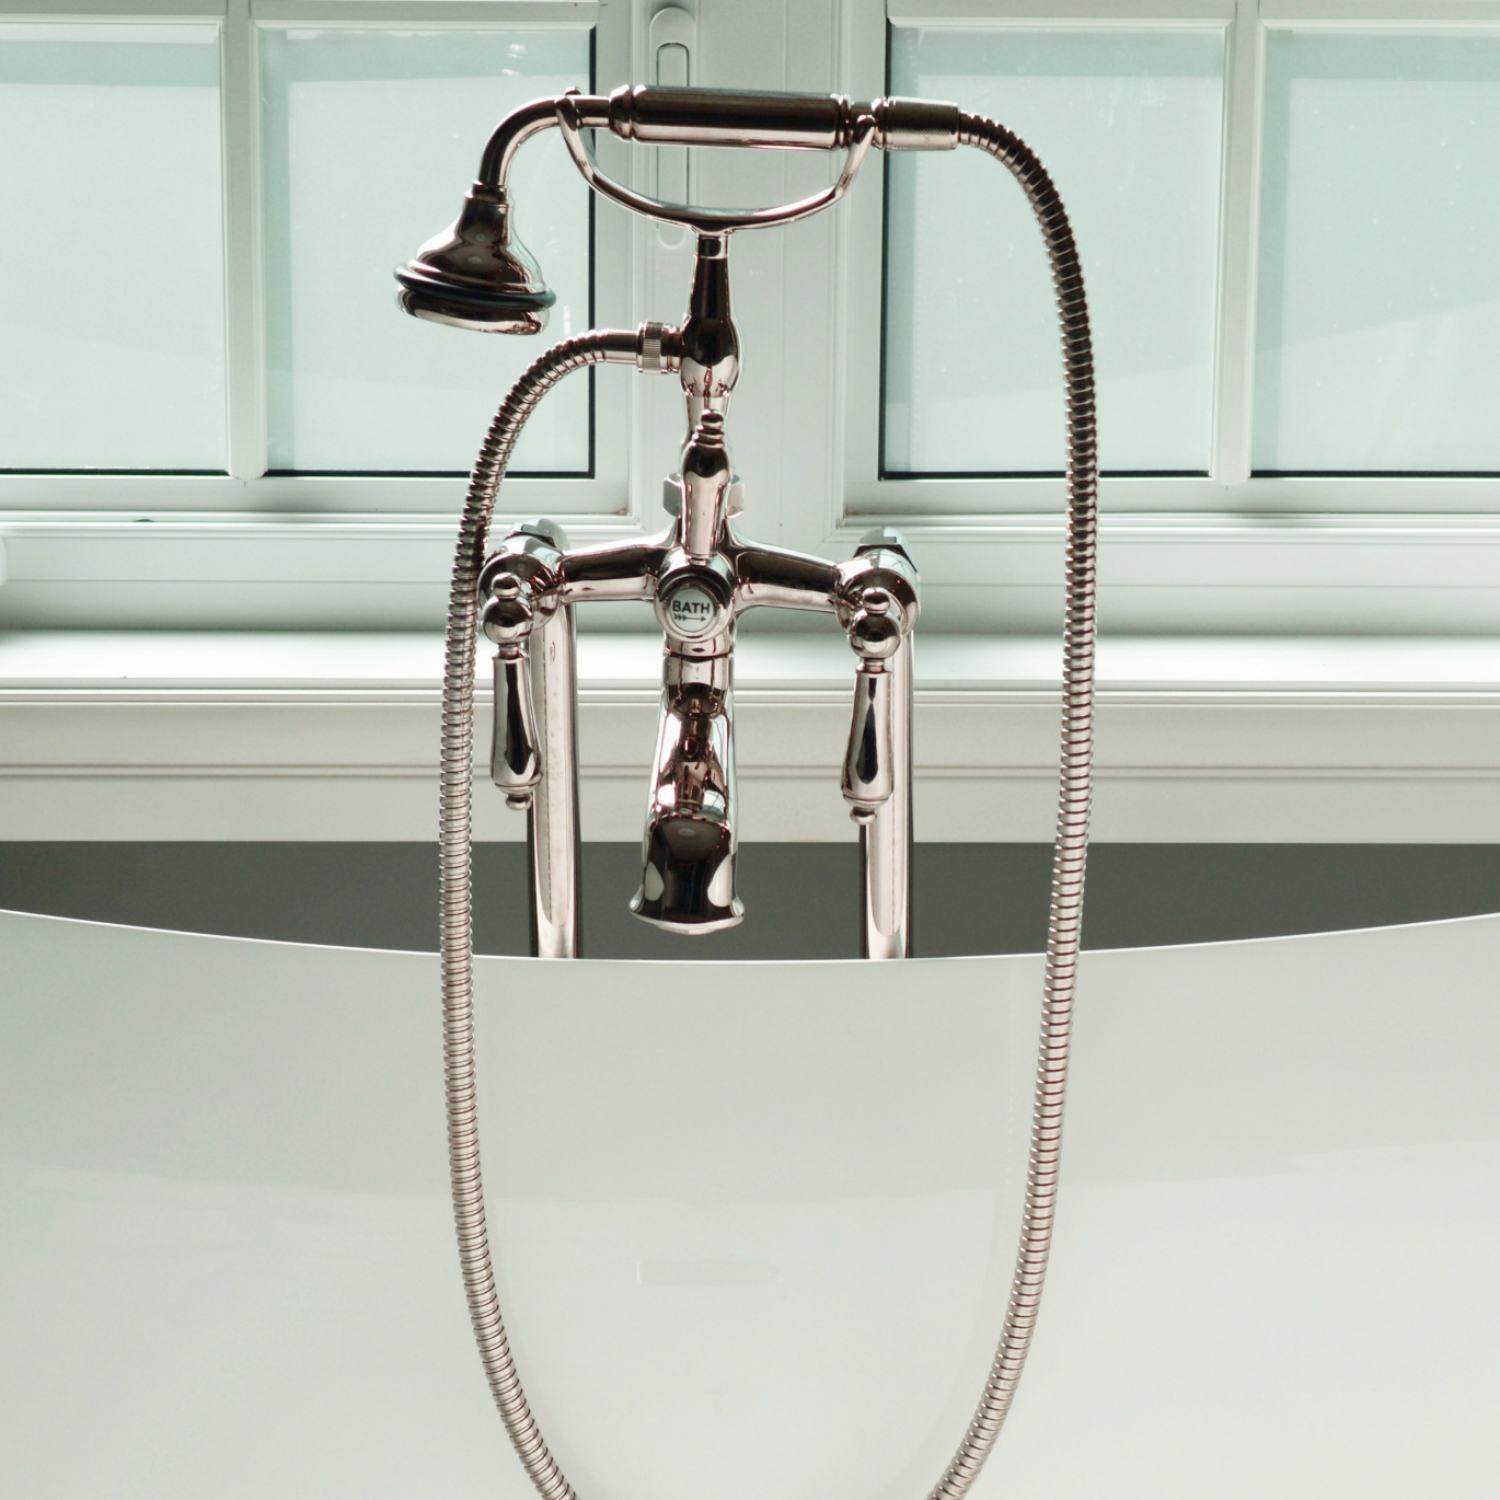 Close up of removable shower head resting on cradle in tub